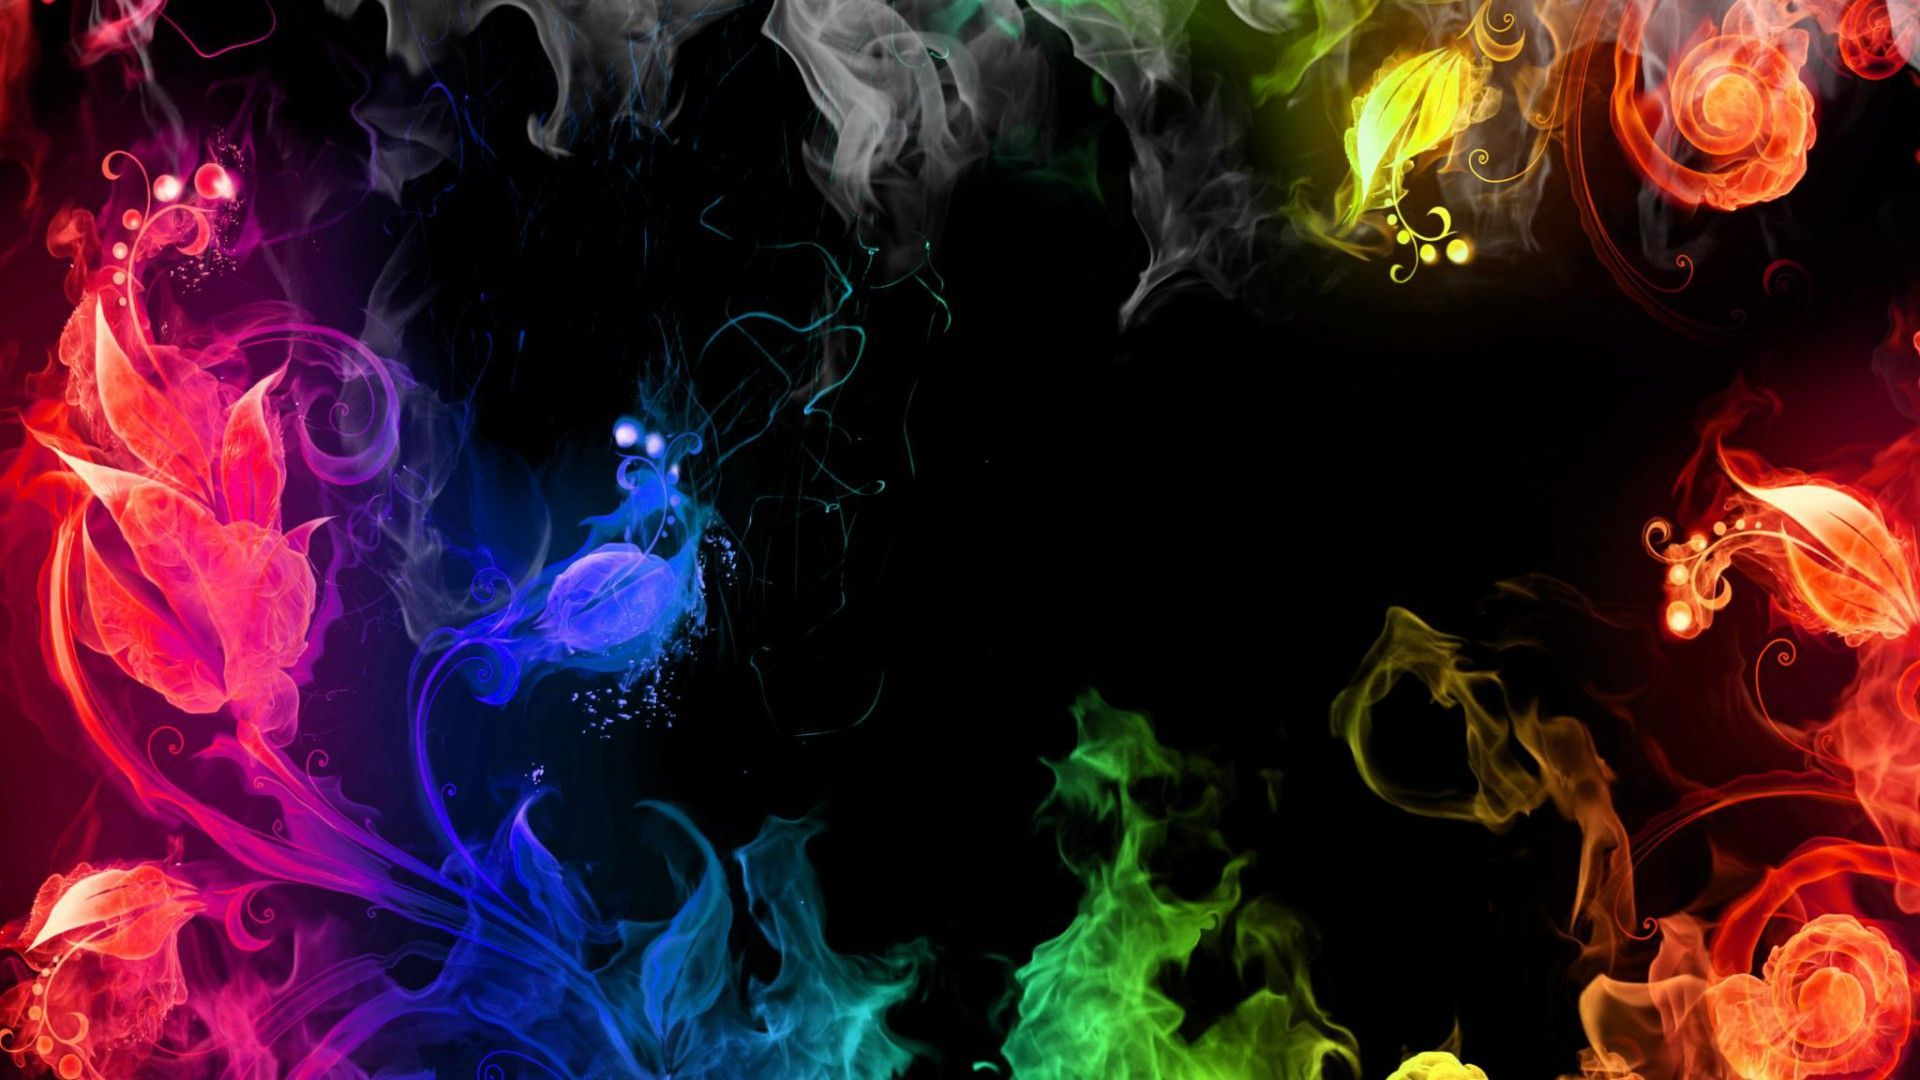 Colorful Abstract Art - Dark Colourful Background Hd - HD Wallpaper